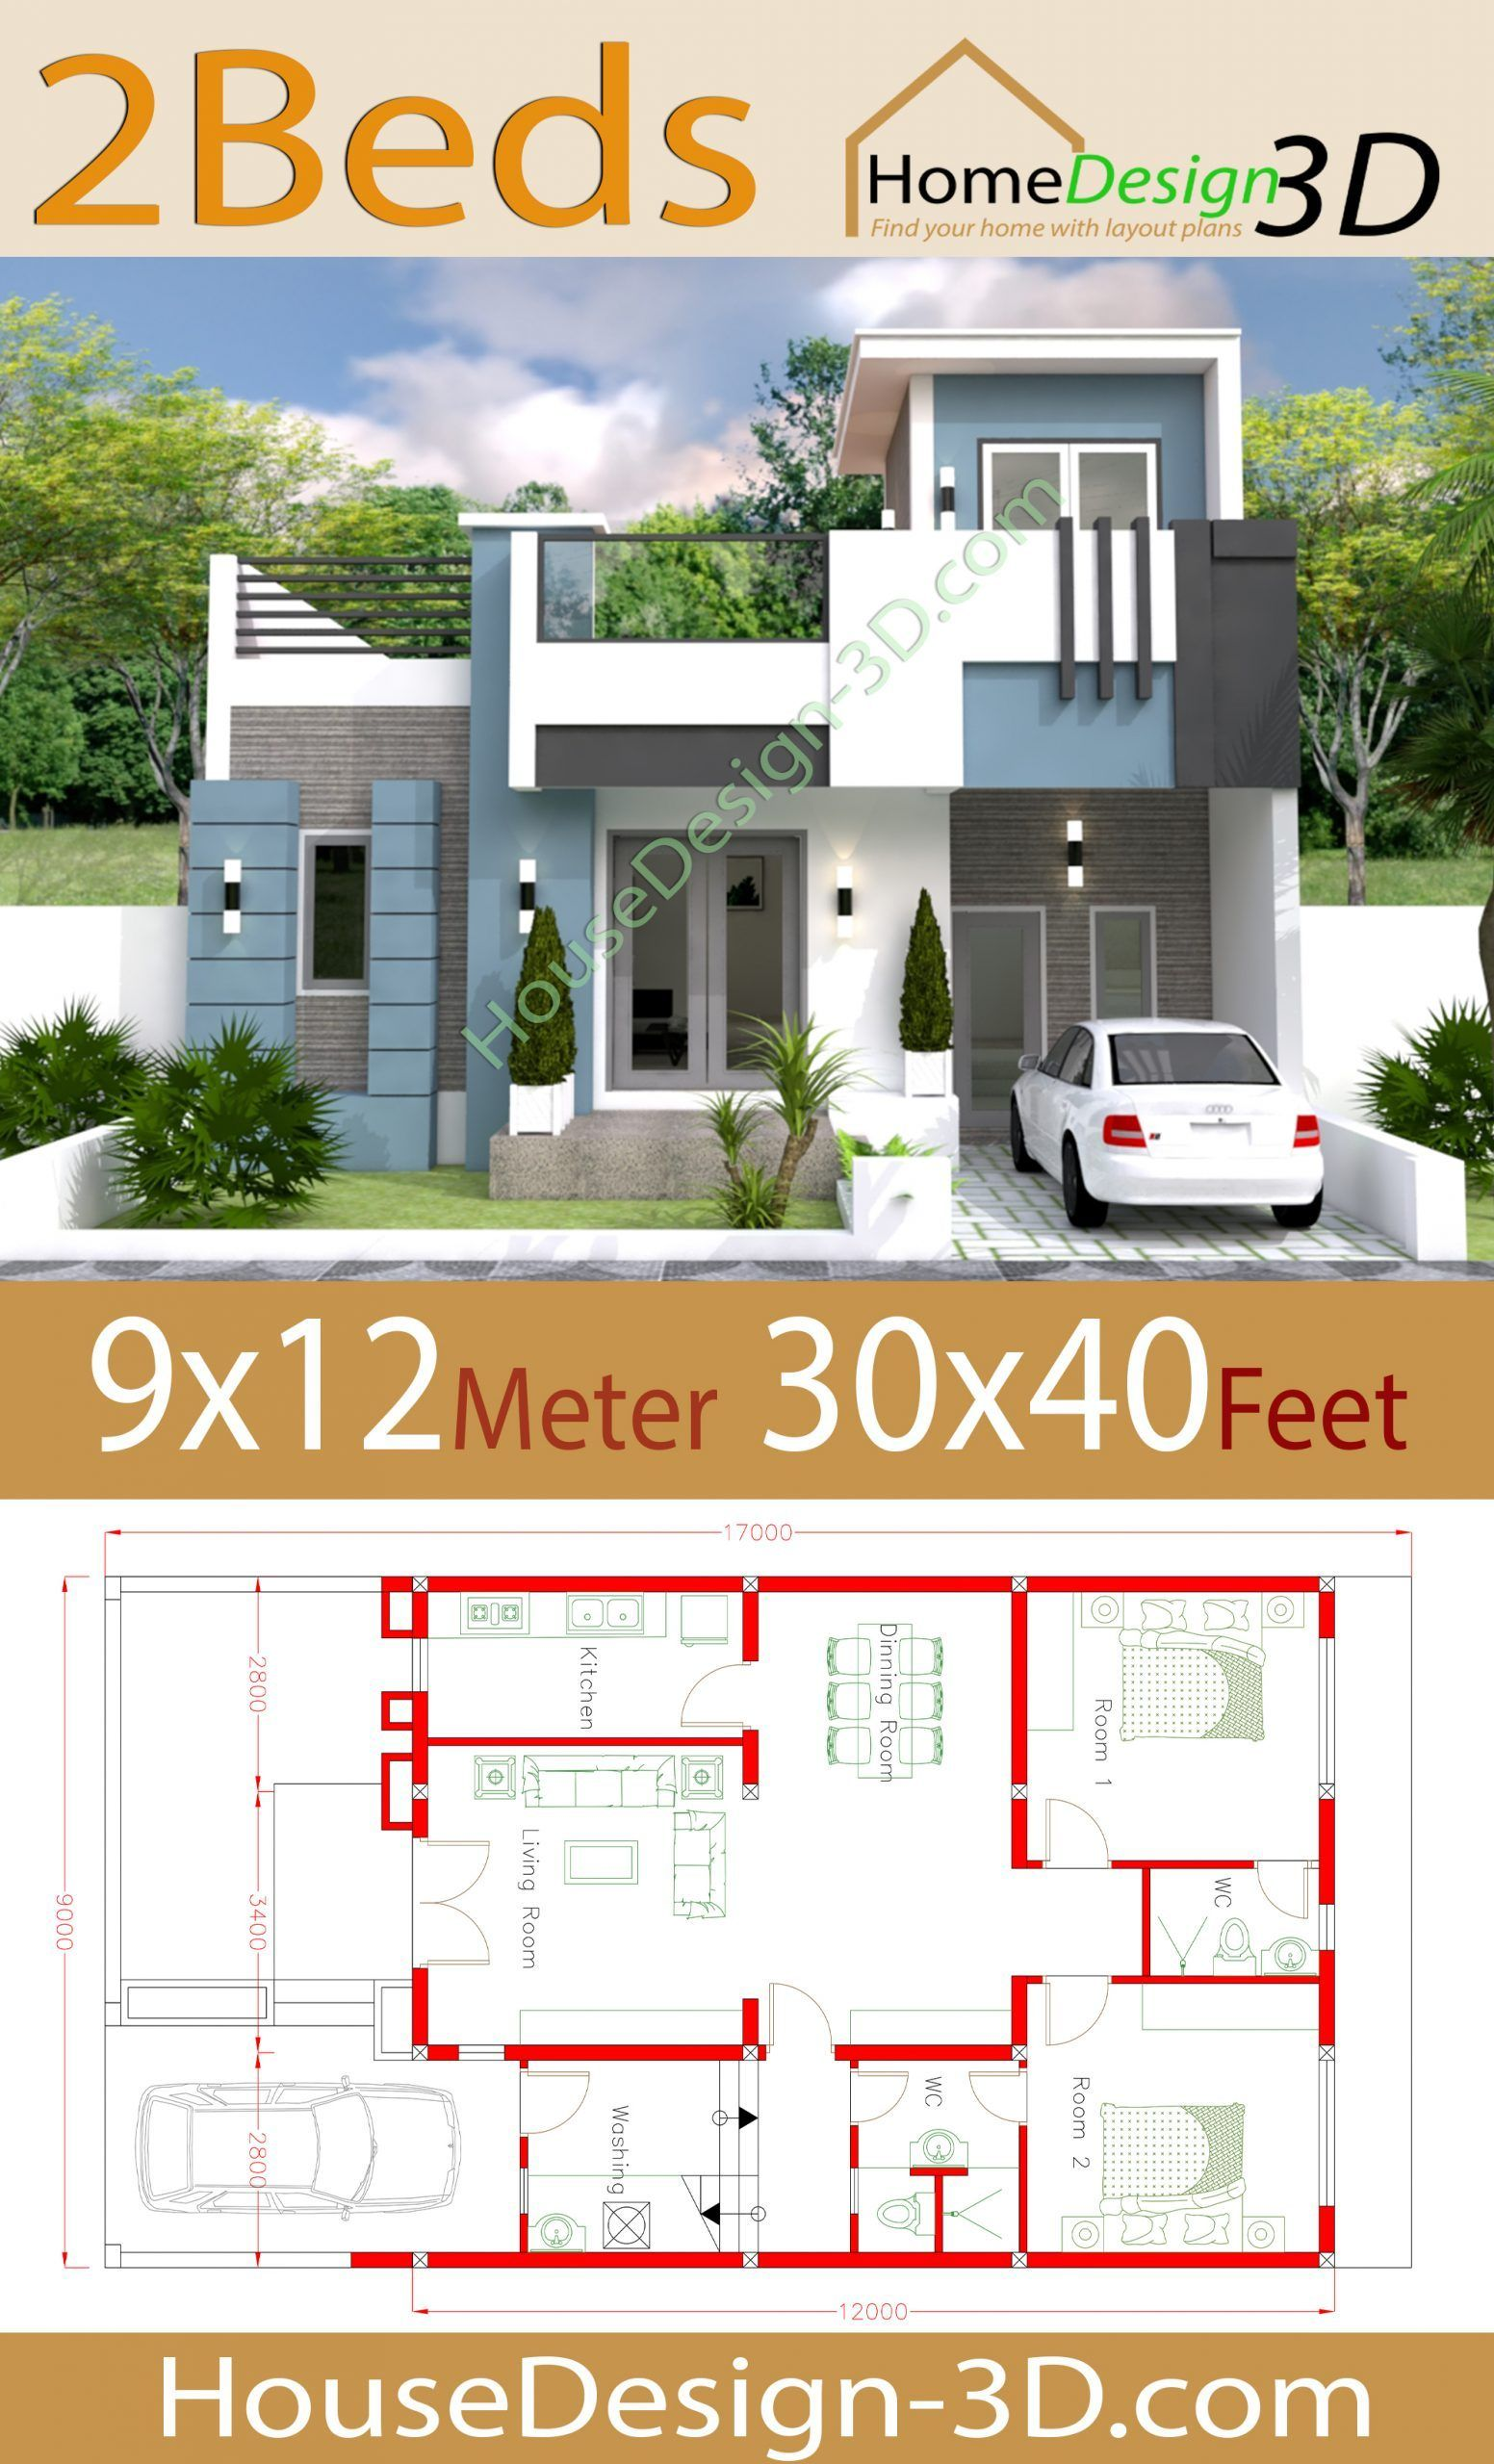 House Design 9x12 With 2 Bedrooms 30x40 Feet House Design 3d In 2020 House Design House Construction Plan Bungalow House Design